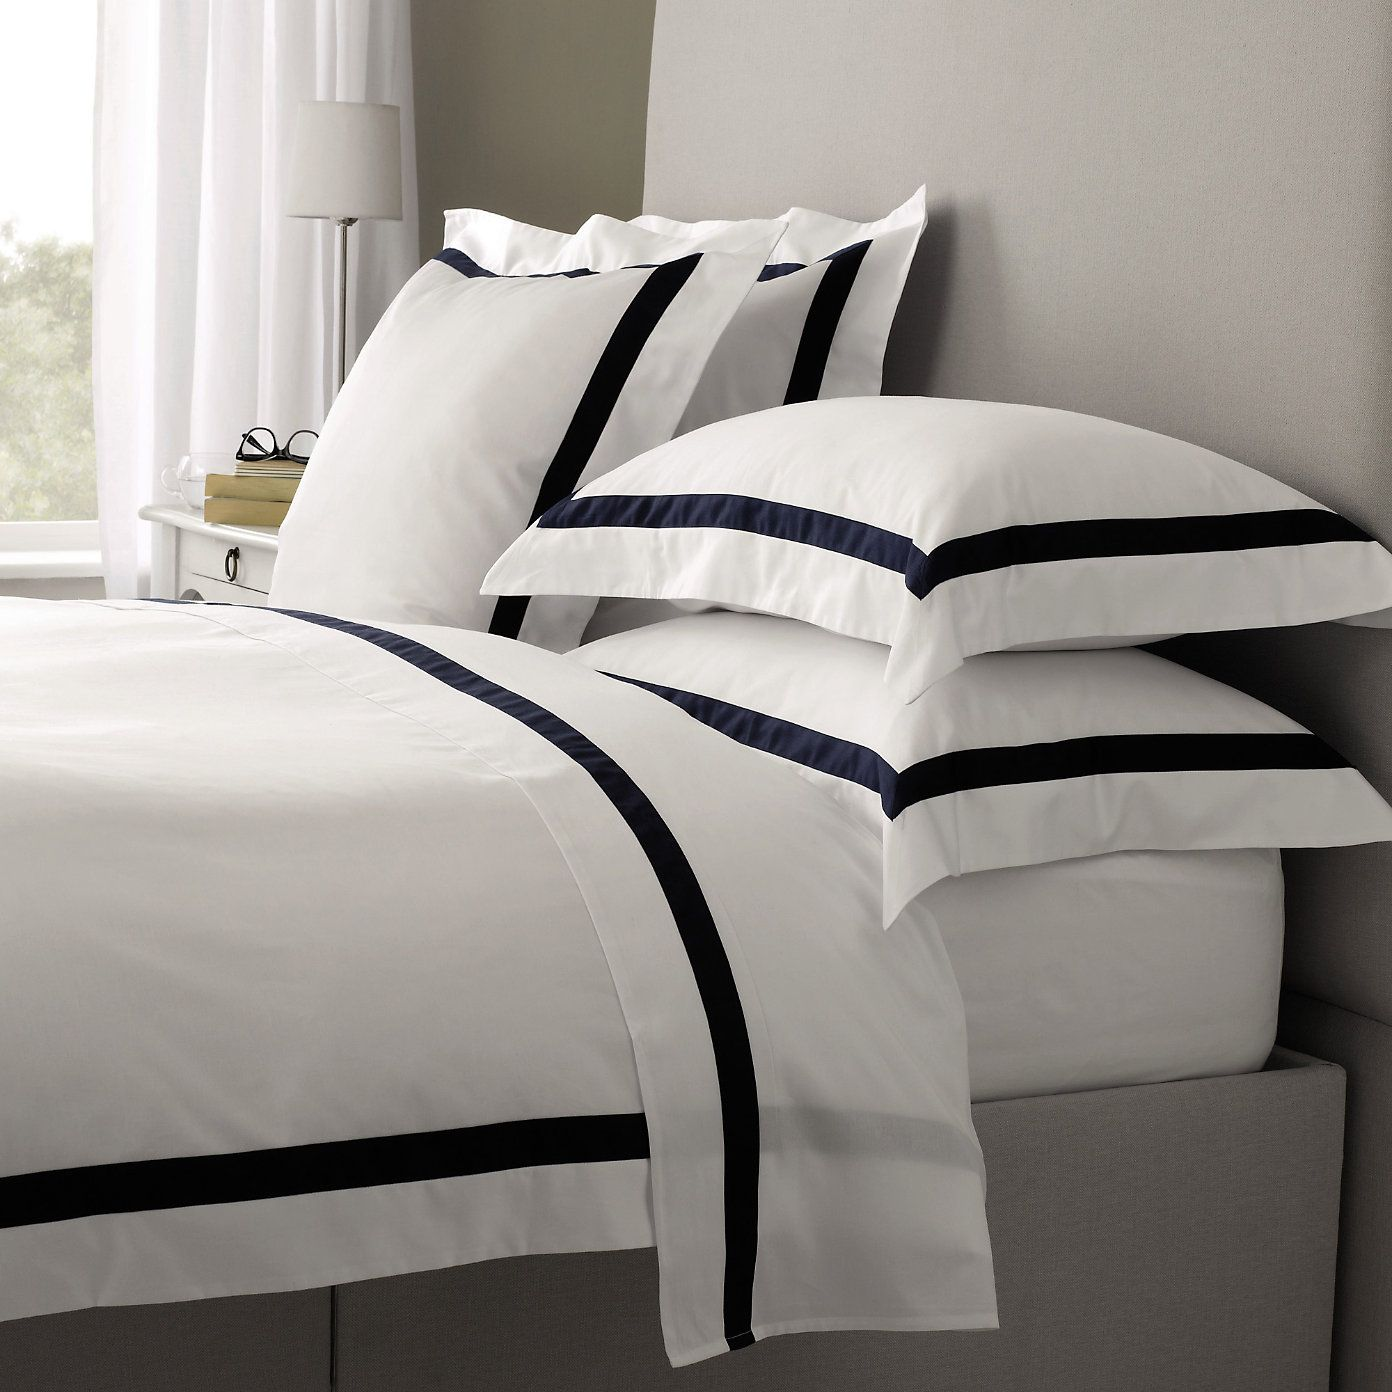 Bed sheets designs white - Bed Linen Great Graphic Design With The Addition Of Grosgrain Ribbon